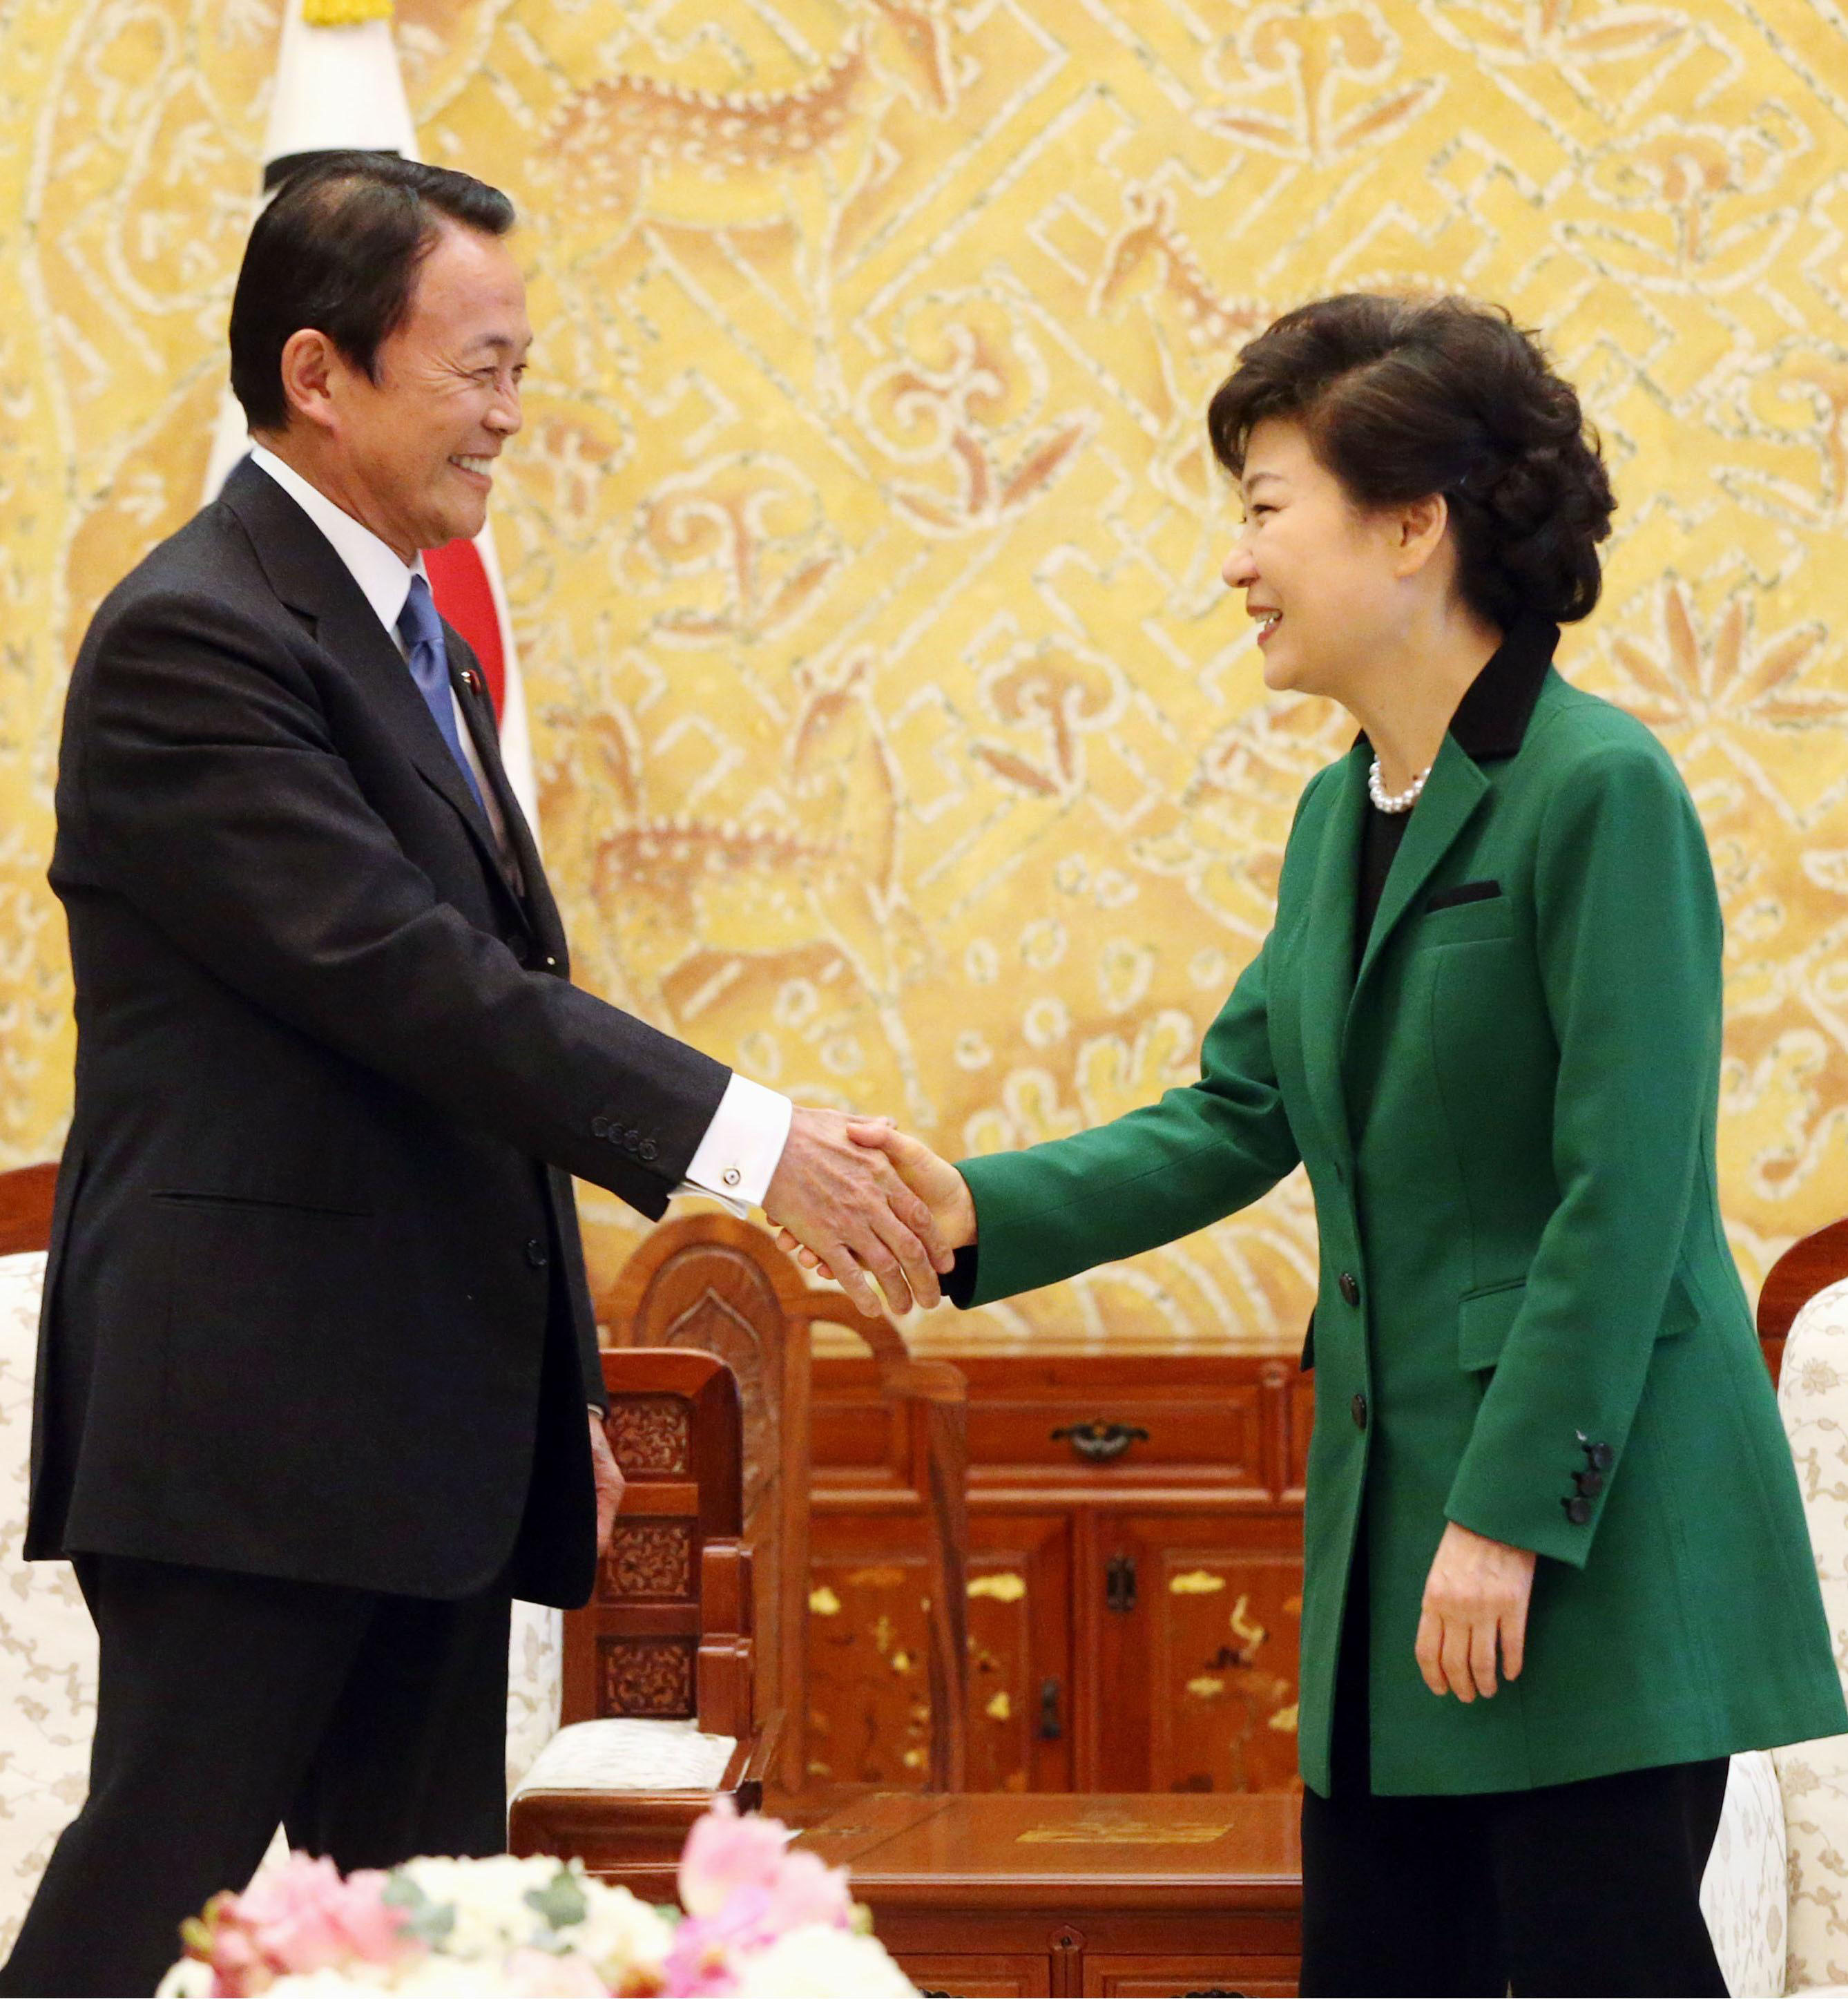 Tokyo seoul vow future oriented cooperation with history in mind staking positions deputy prime minister taro aso and south korean president park geun hye greet m4hsunfo